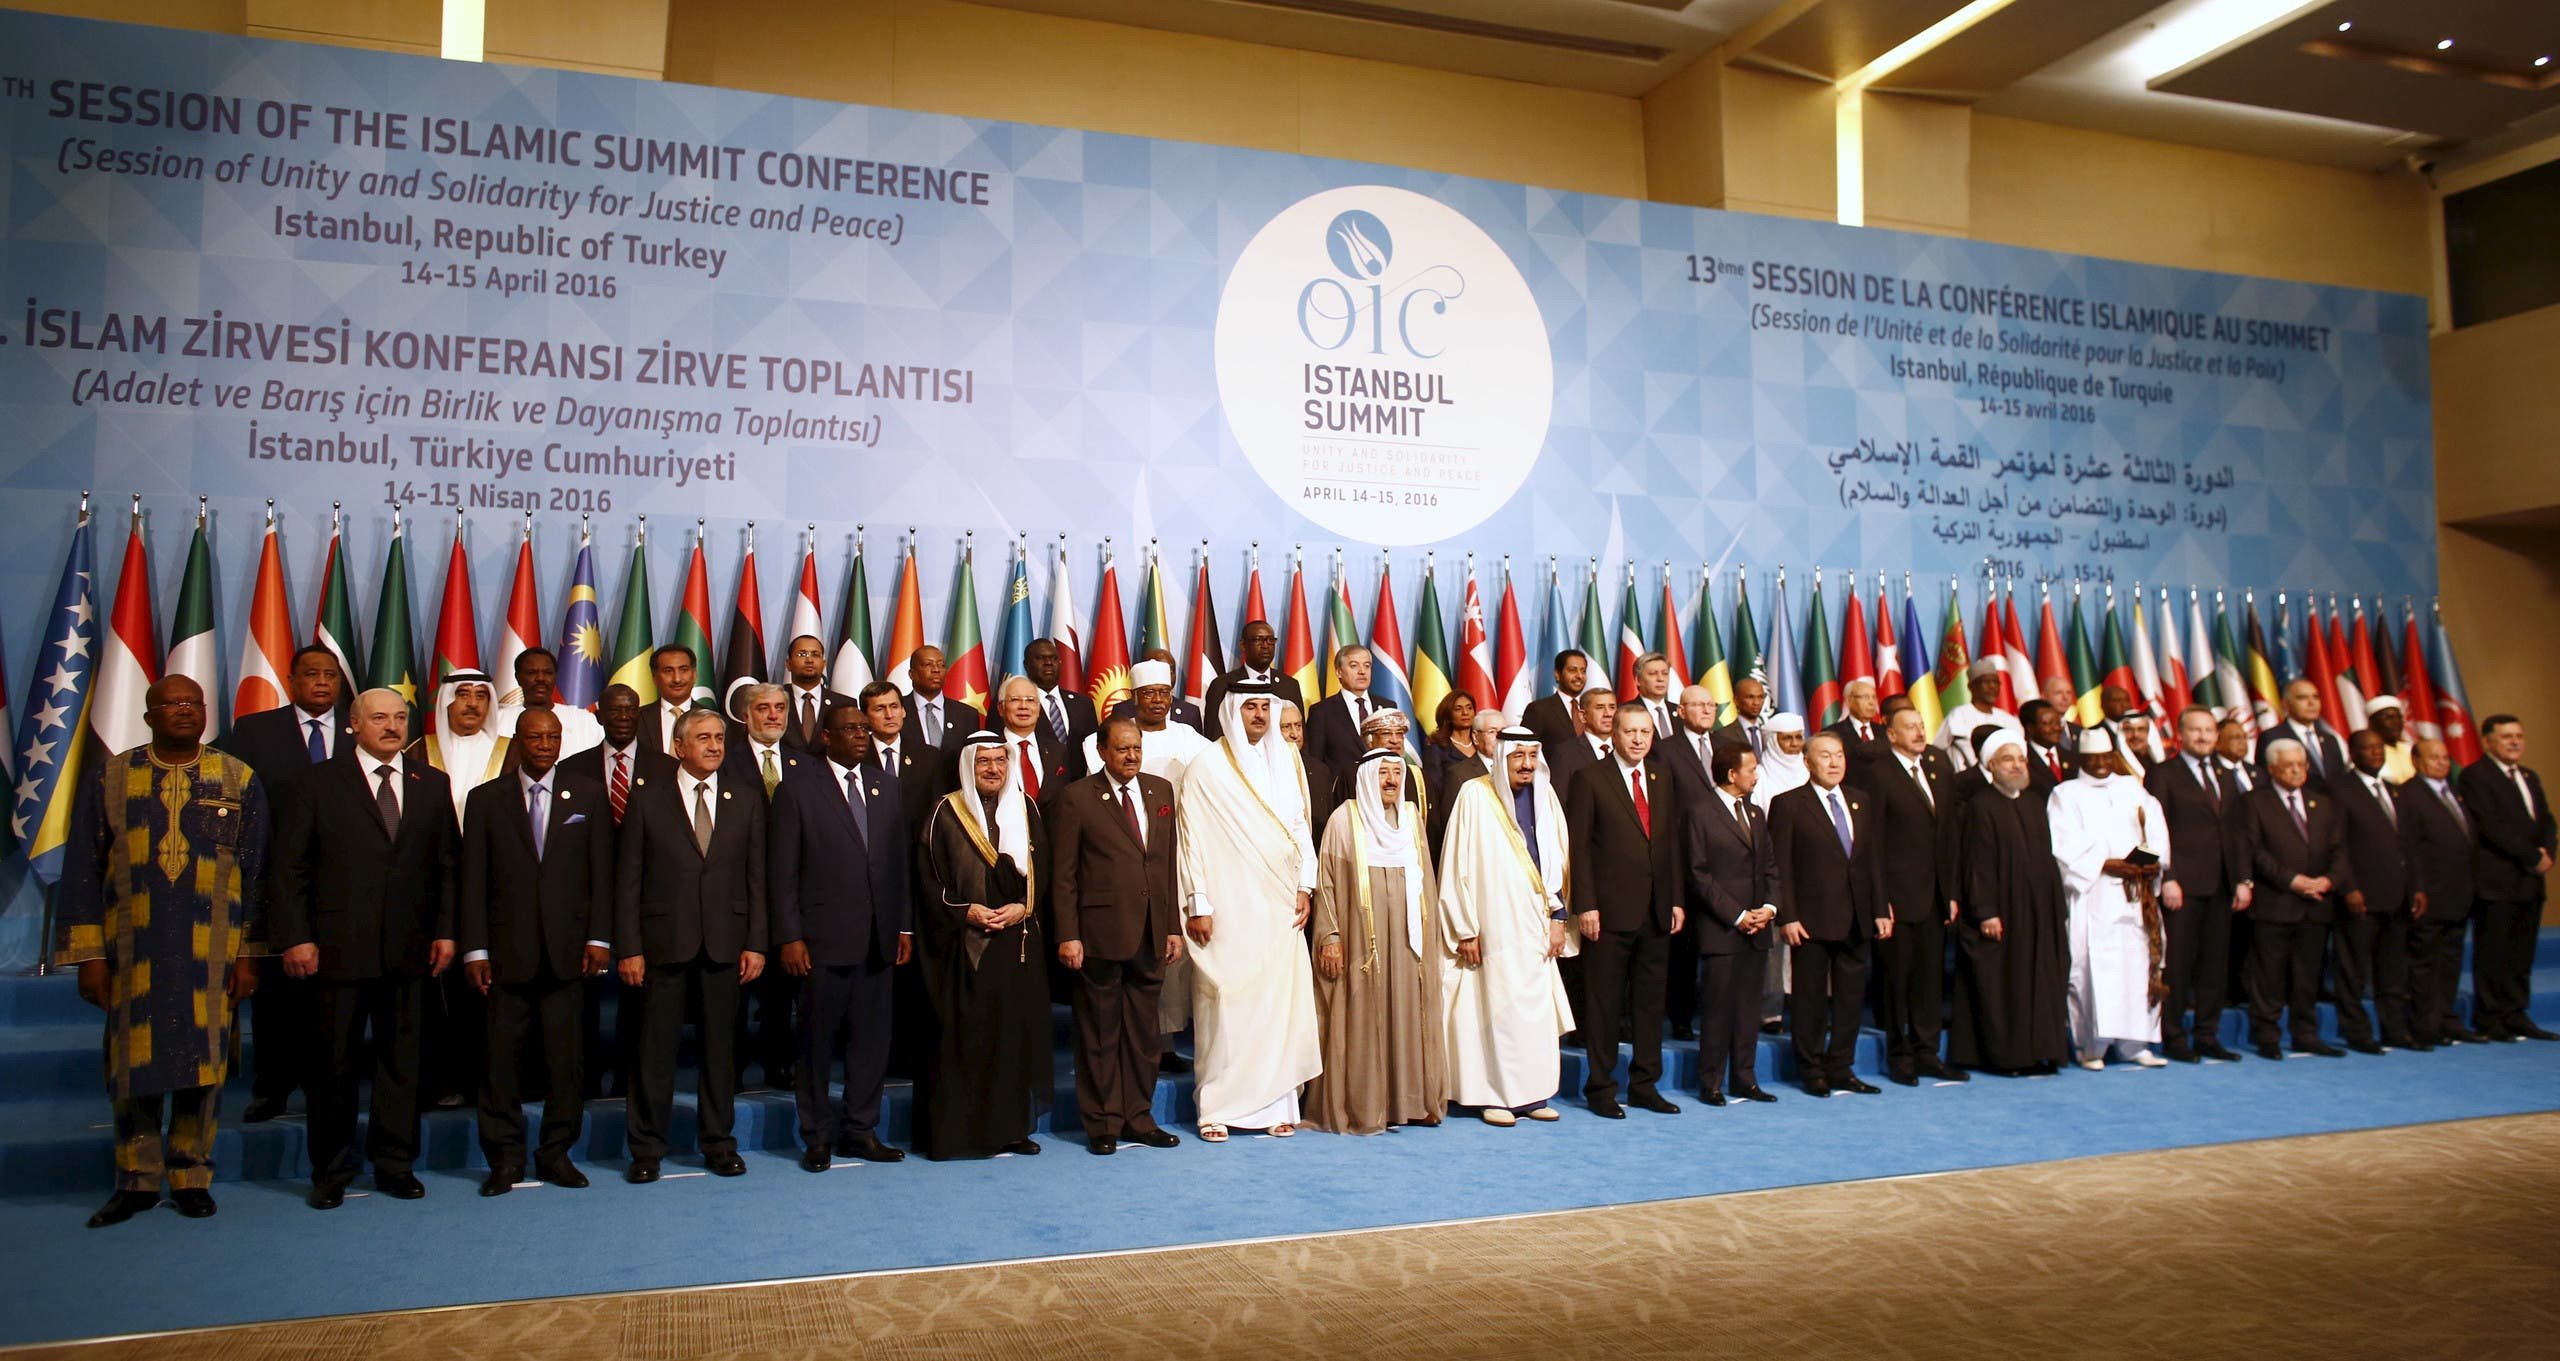 Leaders and representatives of the Organisation of Islamic Cooperation (OIC) member states pose for a group photo during the Istanbul Summit in Istanbul, Turkey April 14, 2016. (Reuters)